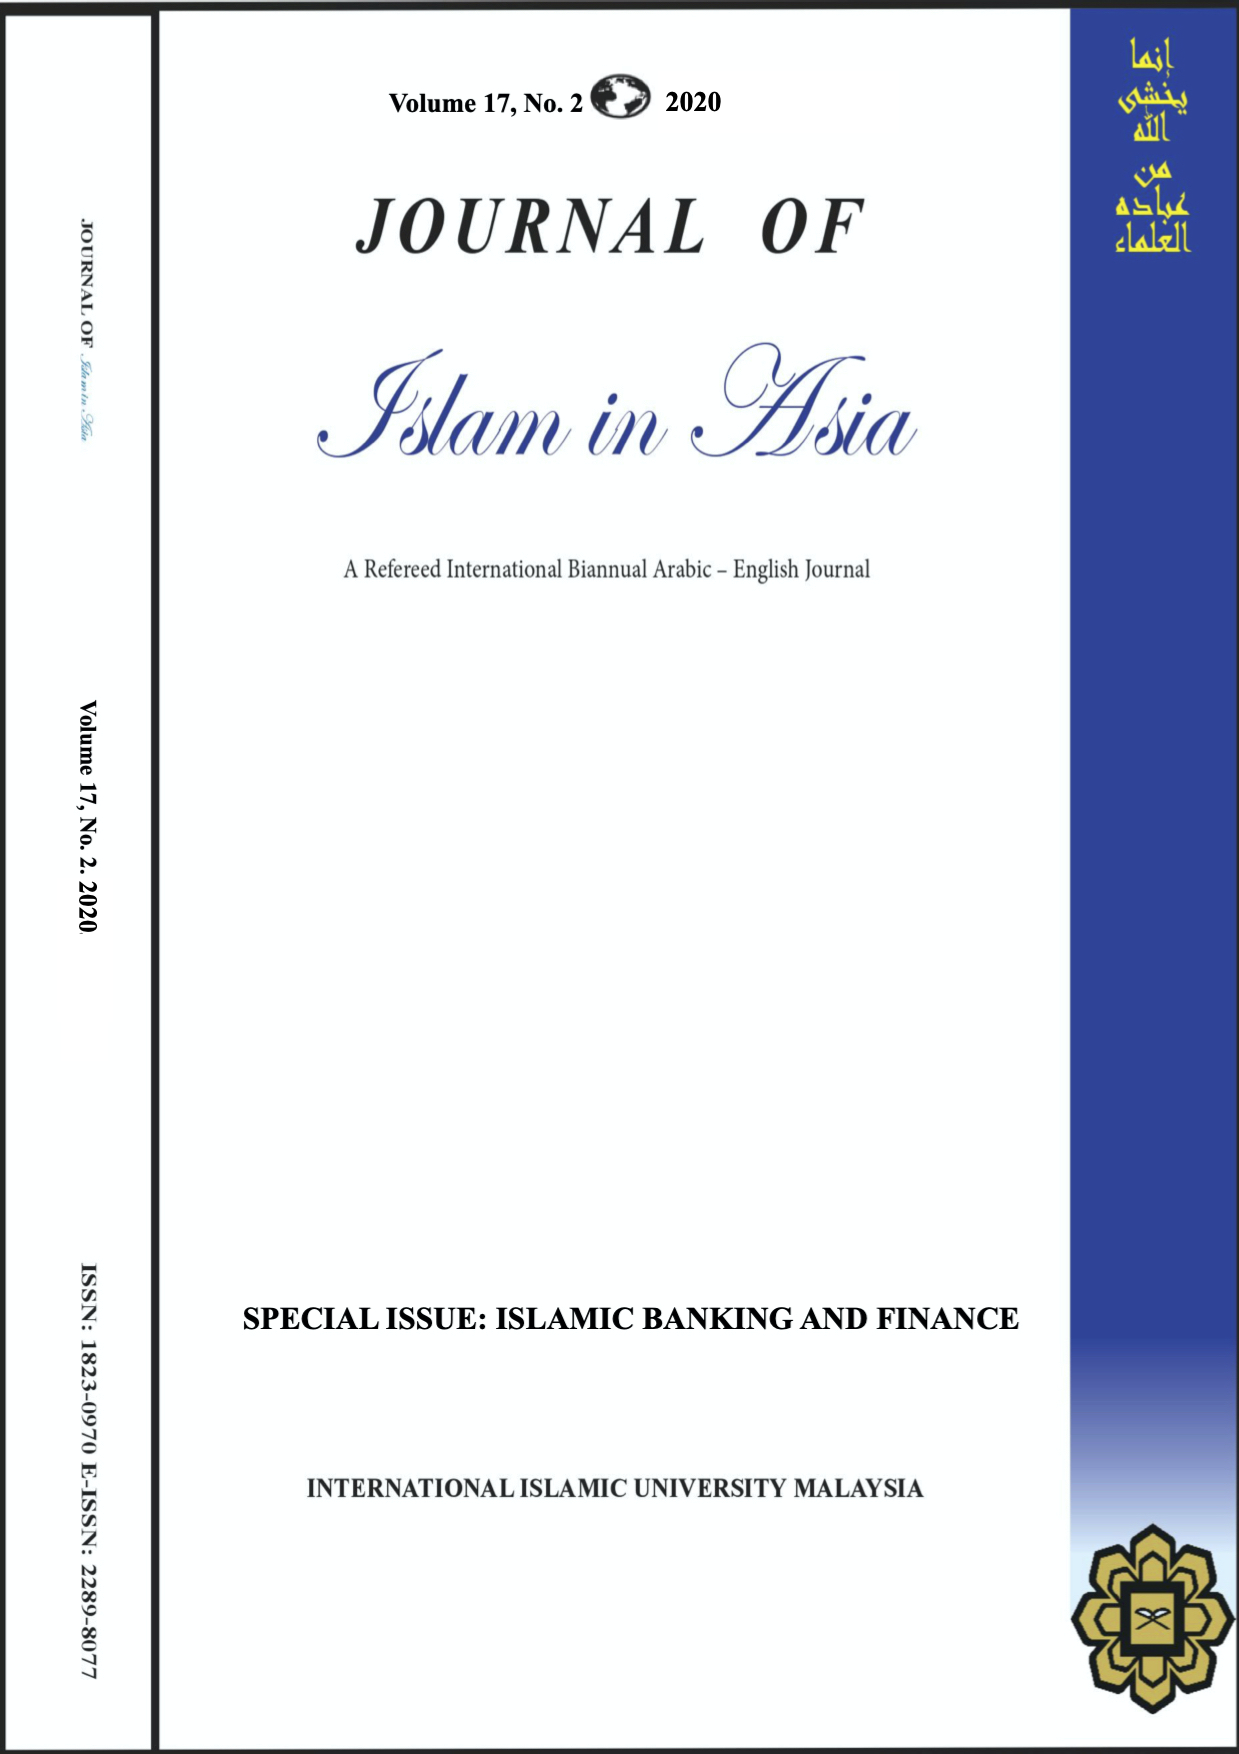 View Vol. 17 No. 2: SPECIAL ISSUE: ISLAMIC BANKING AND FINANCE (2020)